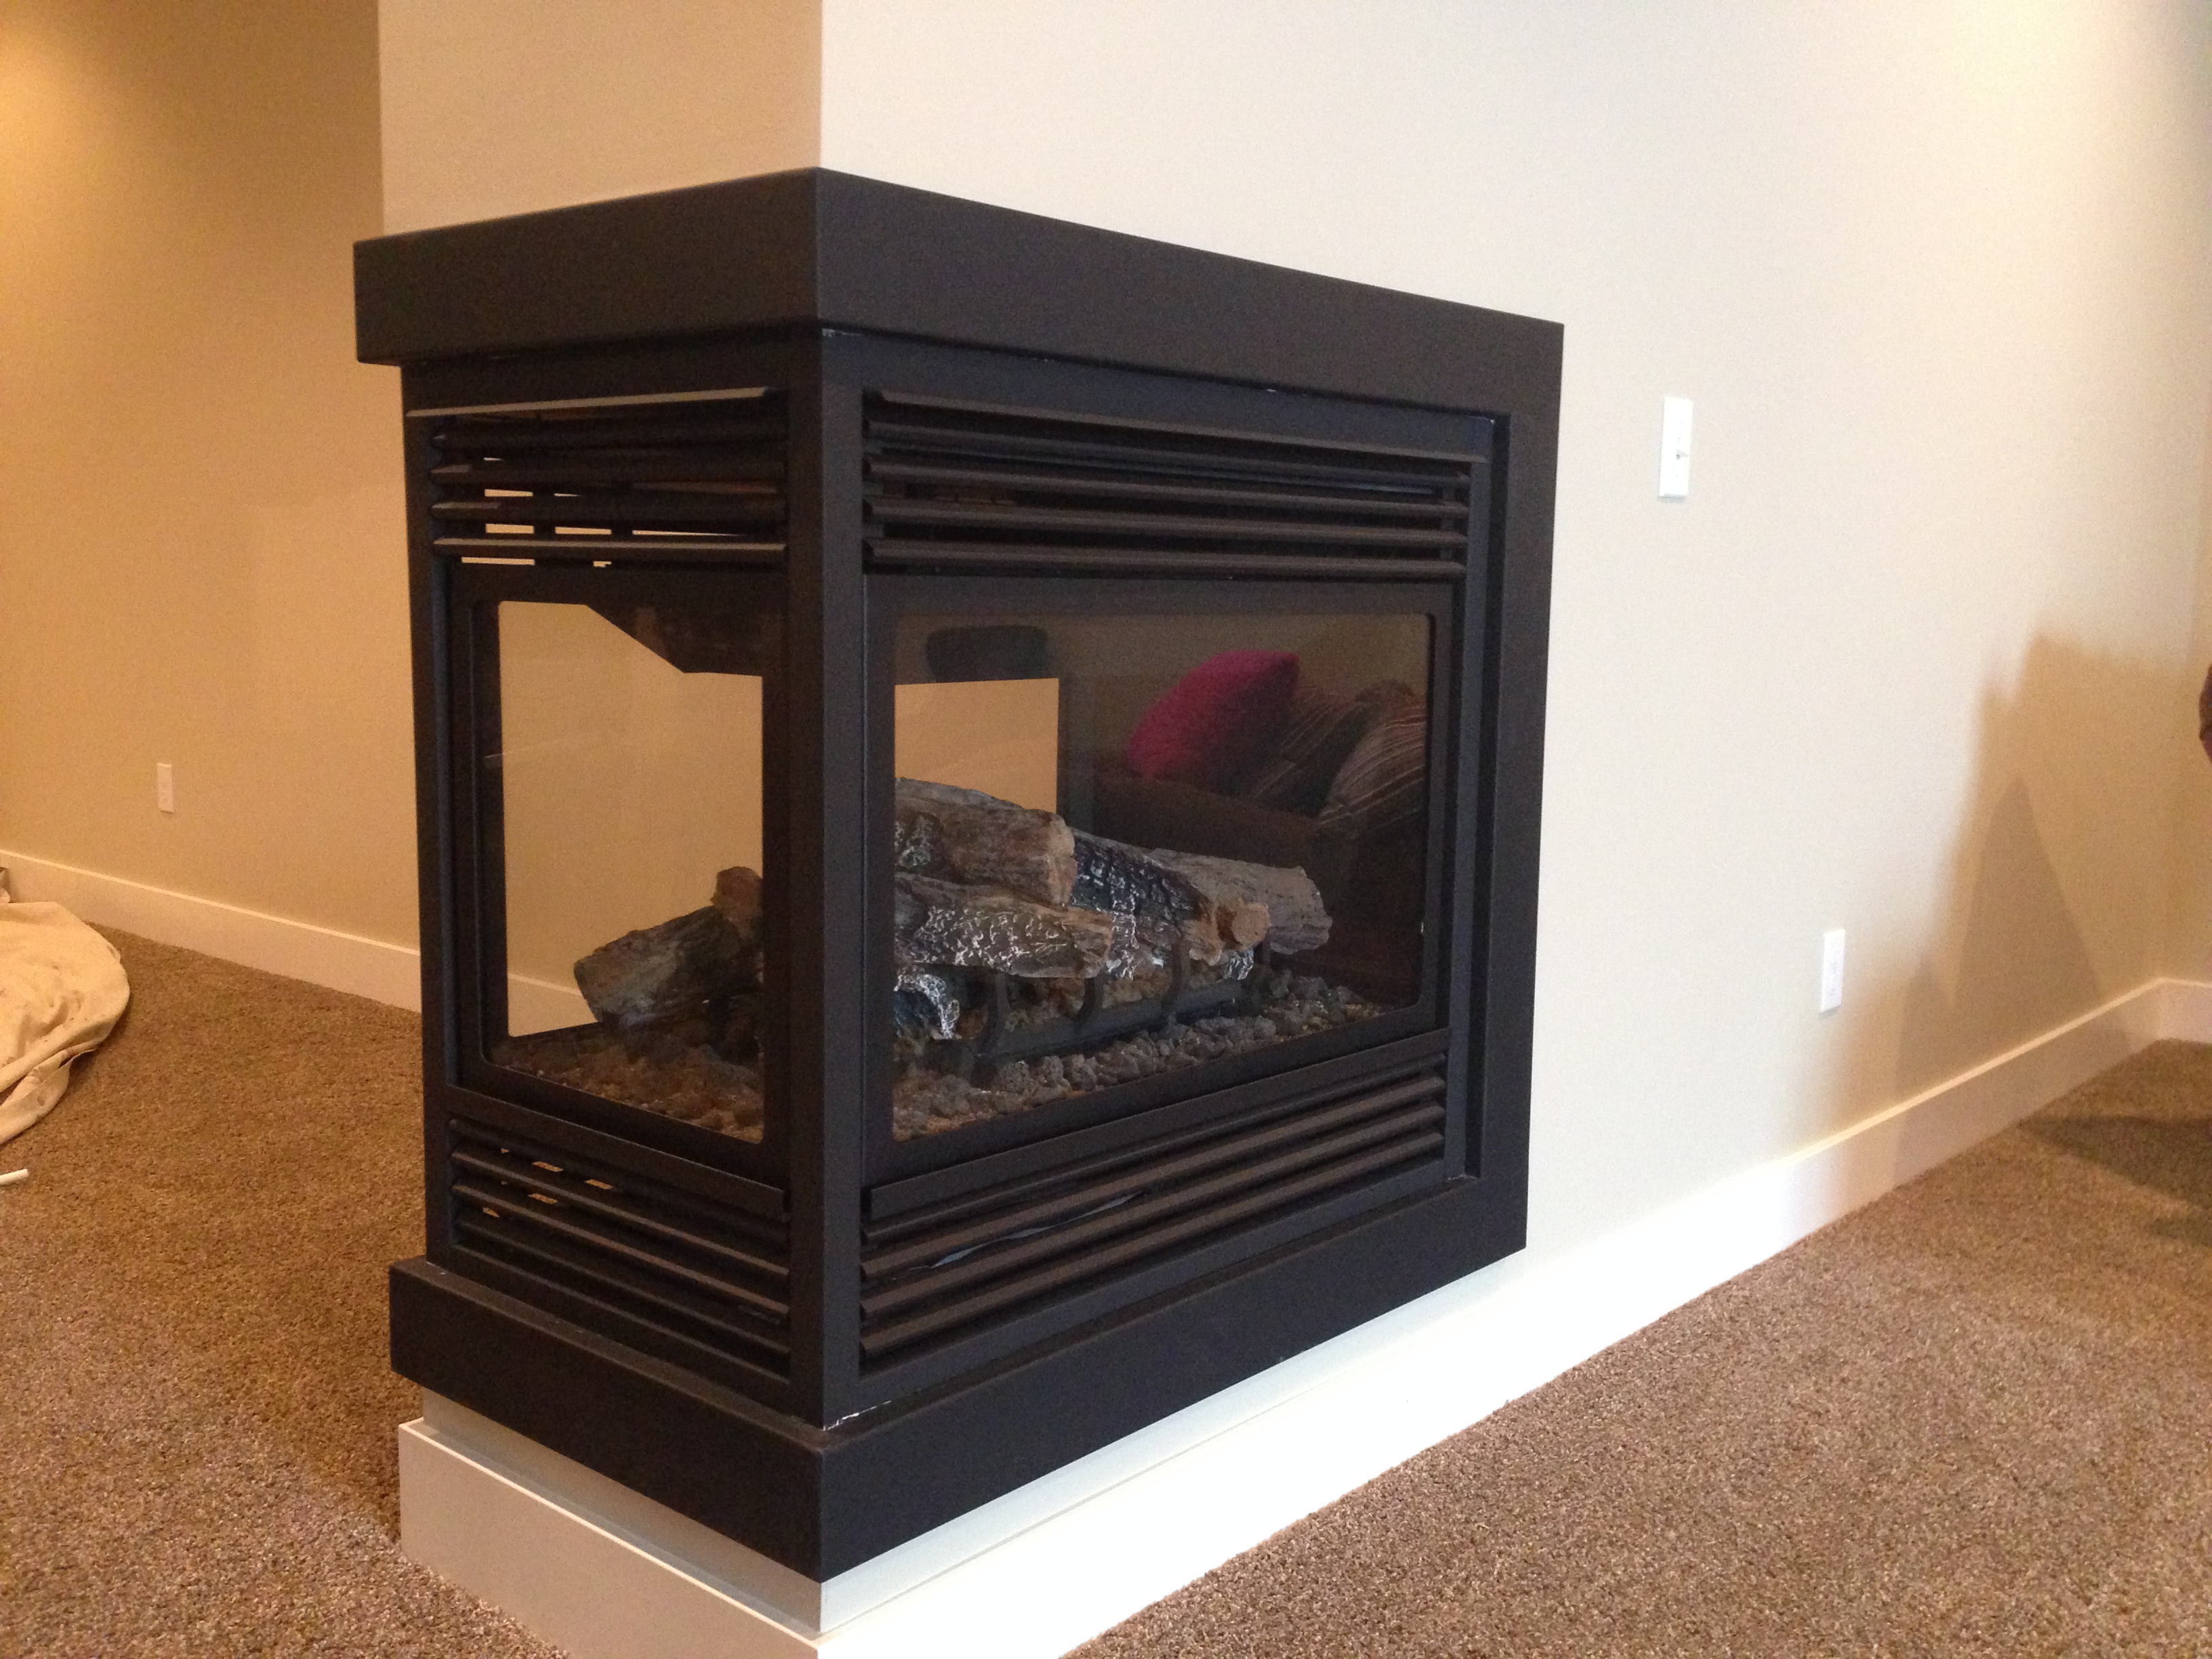 Fireplace+surround.jpeg